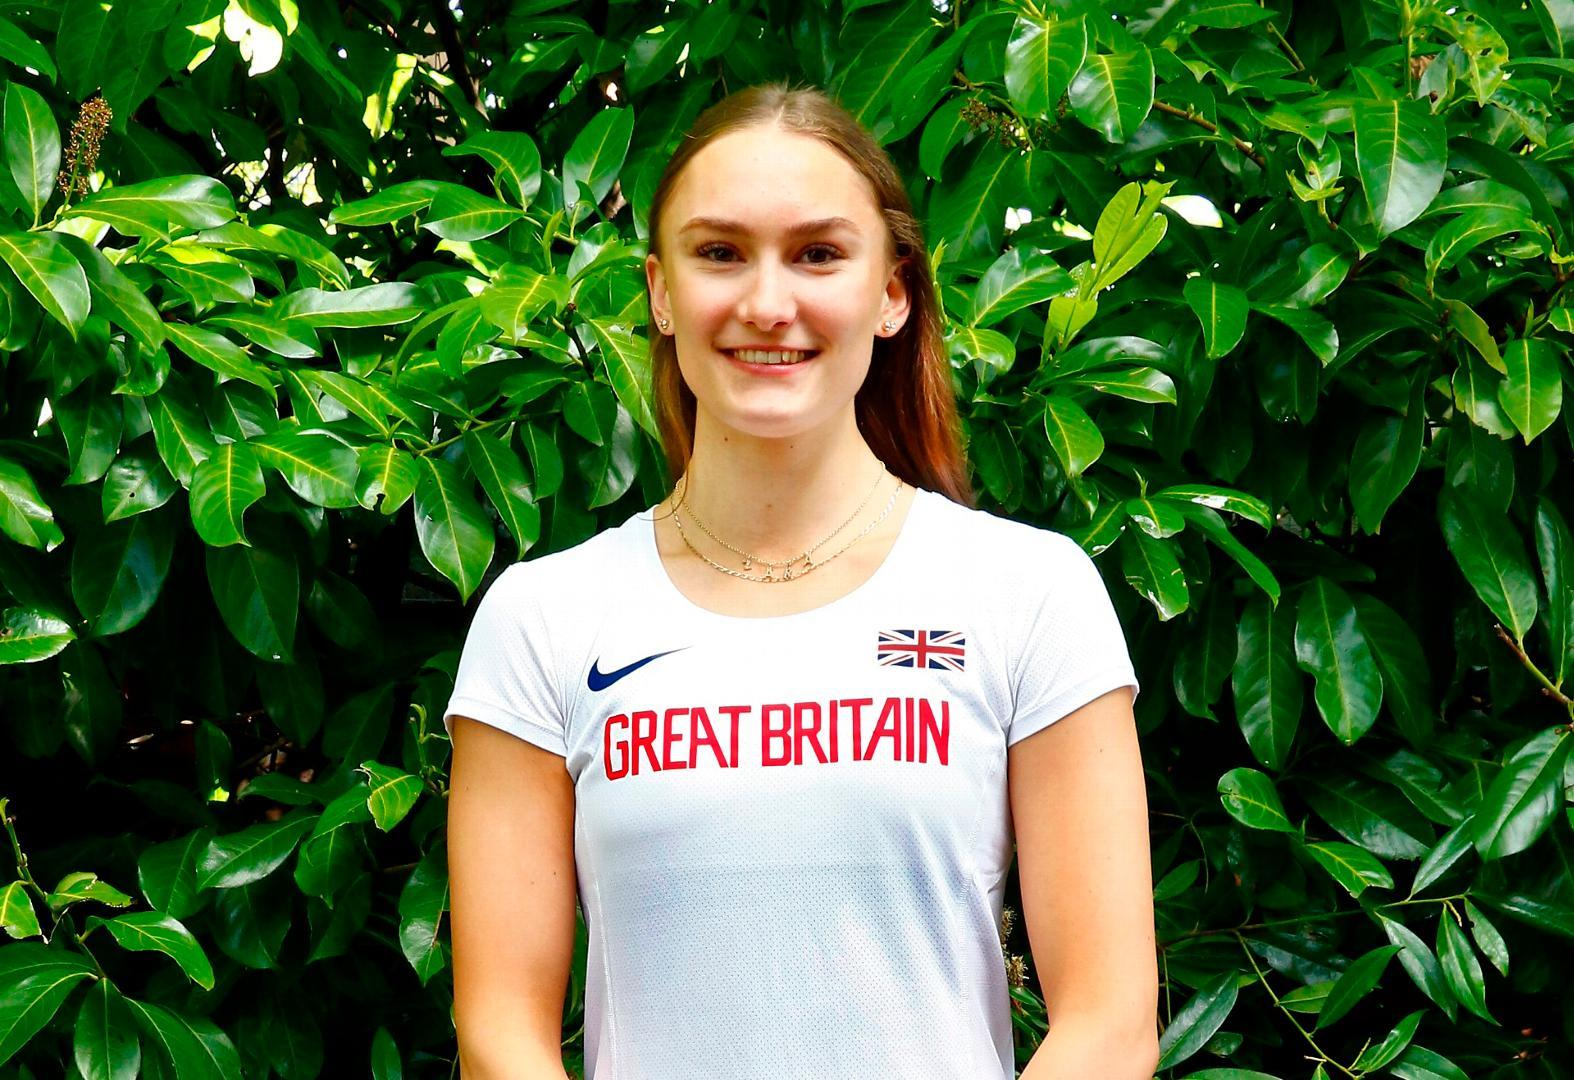 A2 student Zara jumps her way into Team GB